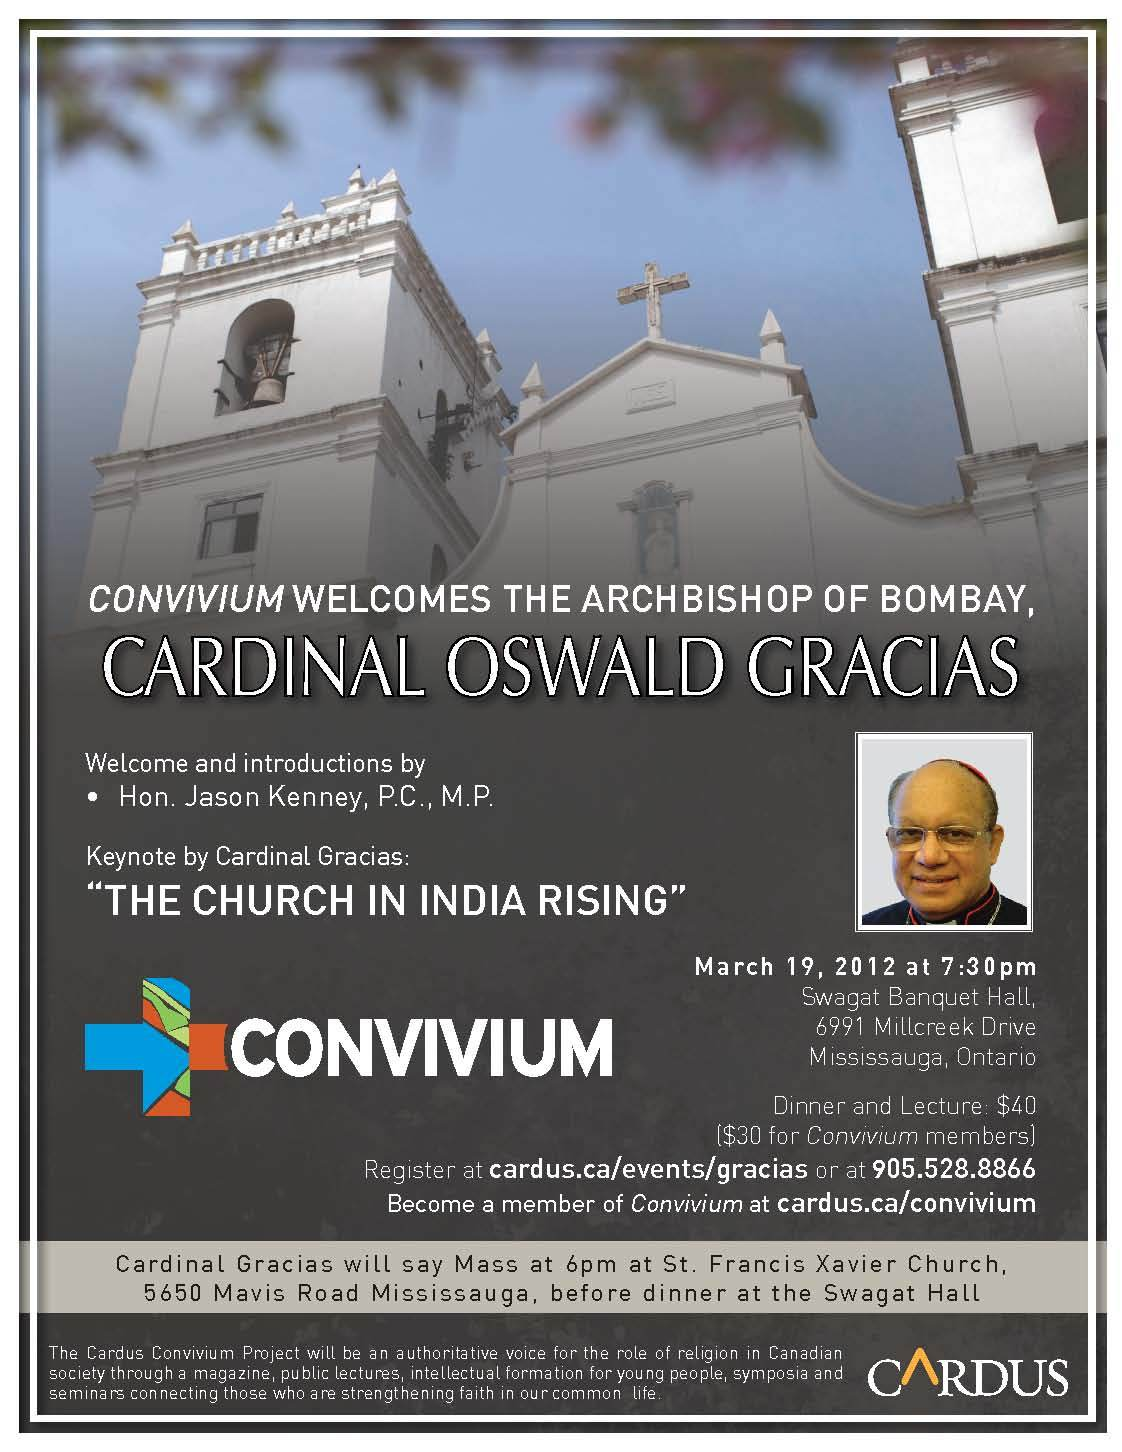 Convivium Welcomes the Archbishop of Bombay